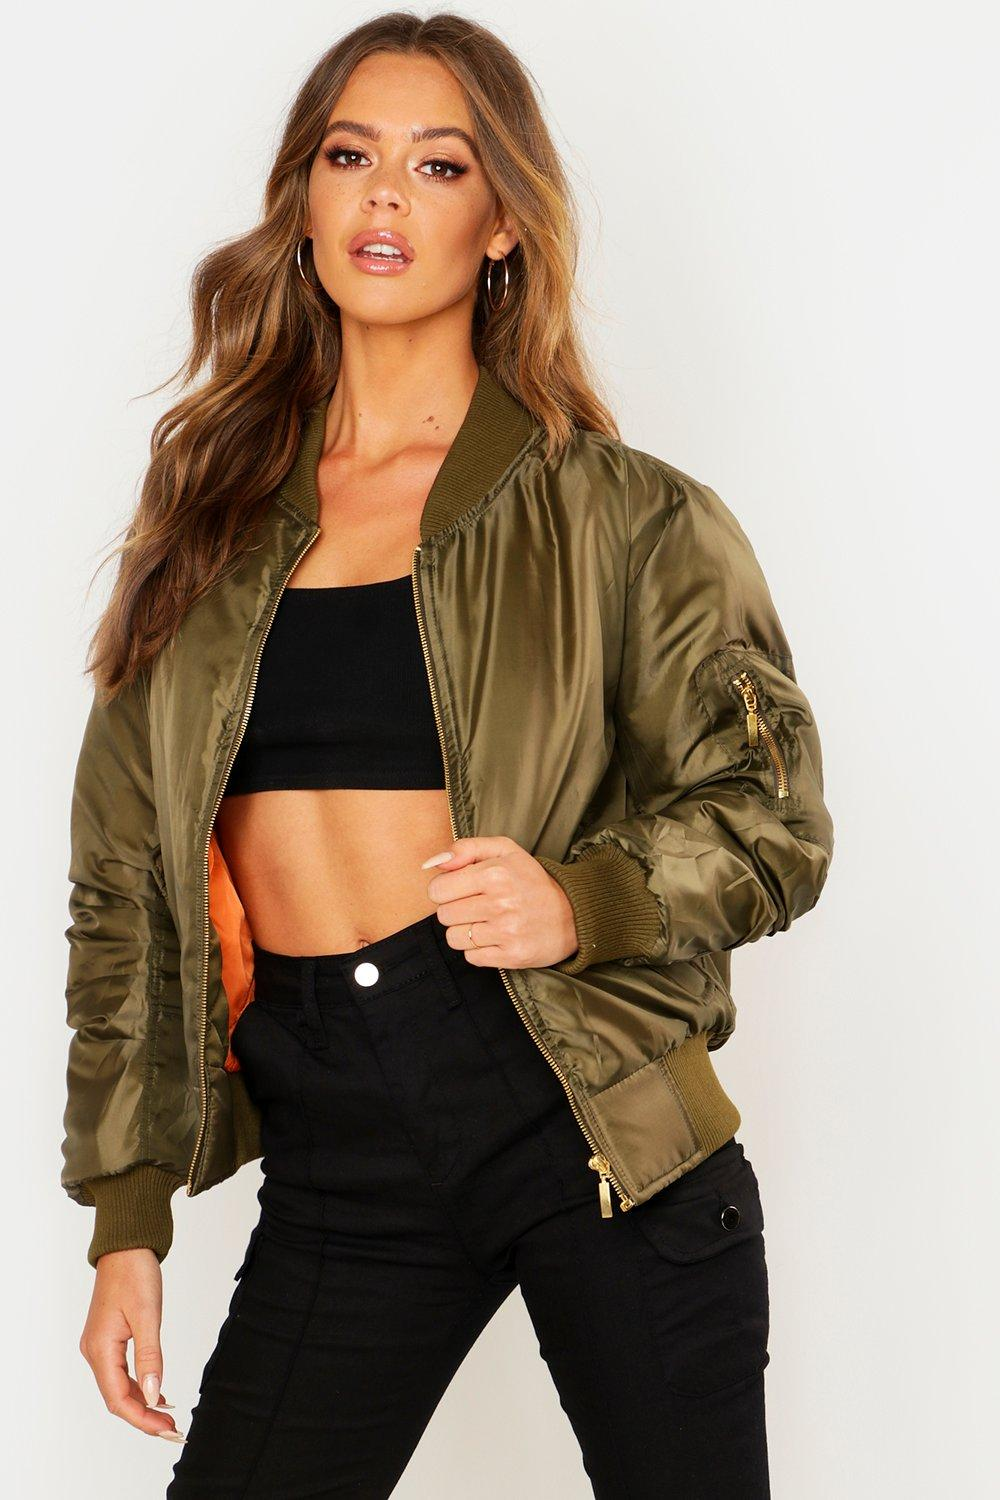 Step out in a hot new bomber jacket this winter. Whether you're looking for chic metallic or utility green, Forever 21 has it all. Shop online today!